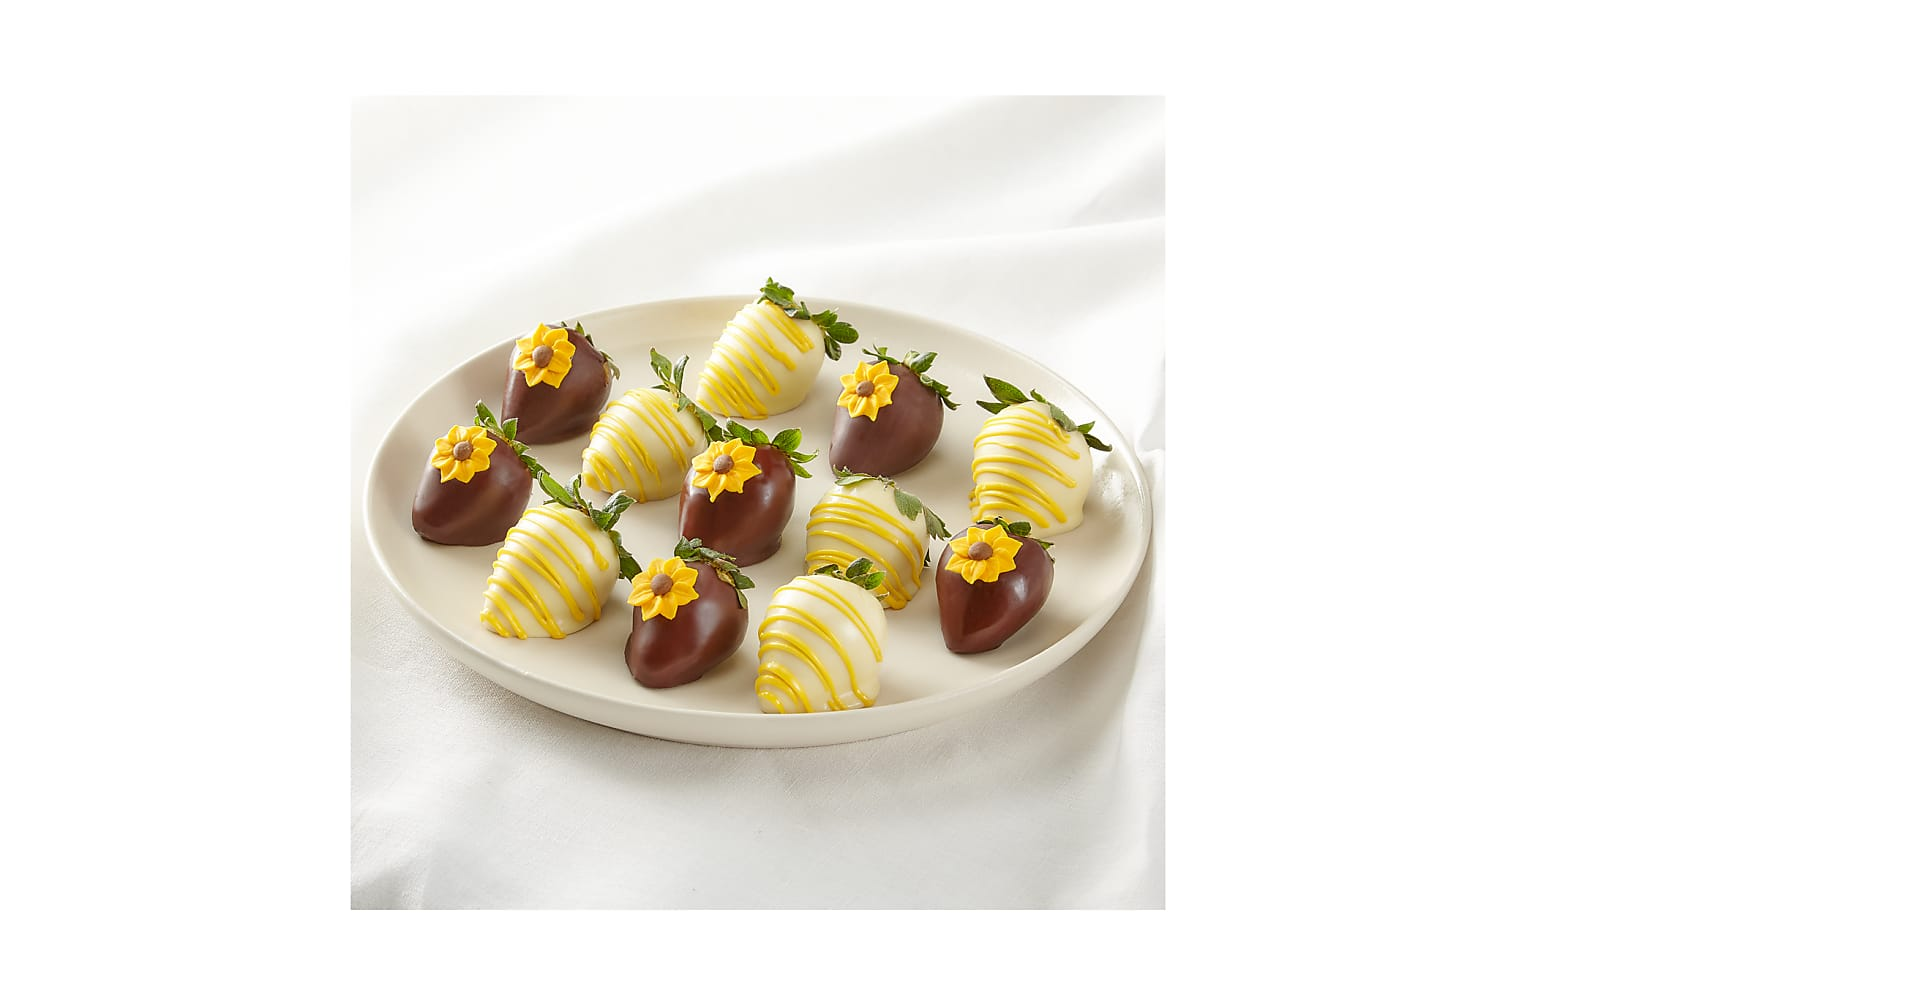 Full Dozen Sunny Days Belgian Dark Chocolate-Covered Strawberries - Image 1 Of 2